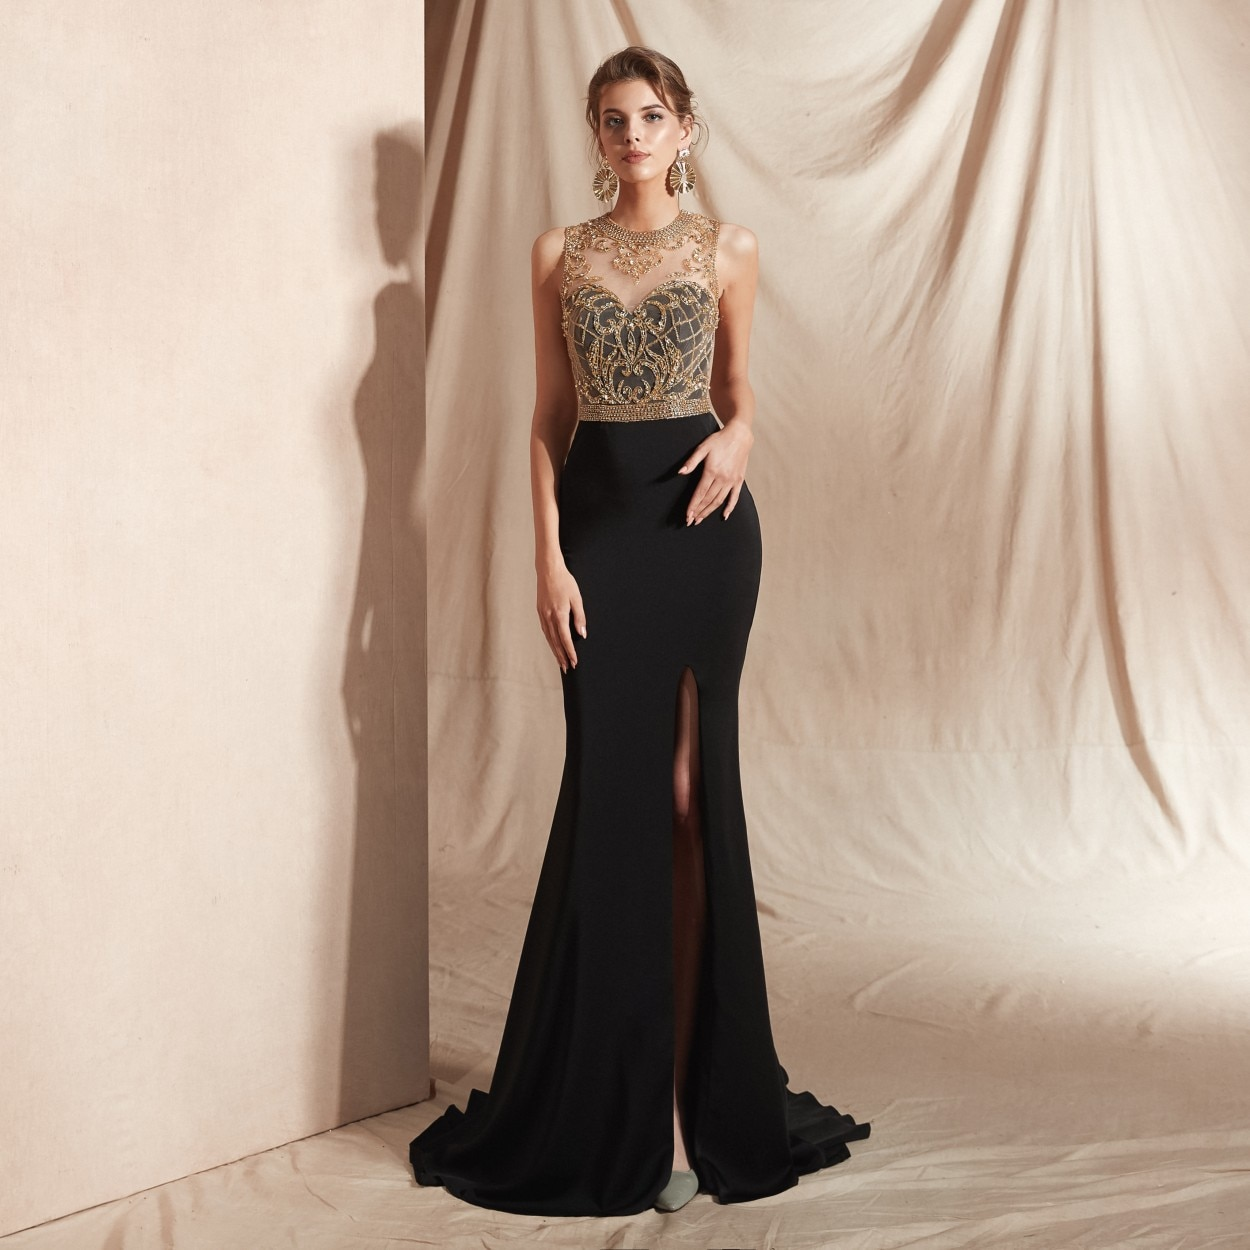 slive sequin formal dresses evening gown elegant long evening dresses evening dress arabic special occasion dresses es2062 Formal Dress Women Elegant Black Mermaid Evening Gown Muslim Evening Dresses Long Beaded Split Occasion Dresses For Women Party